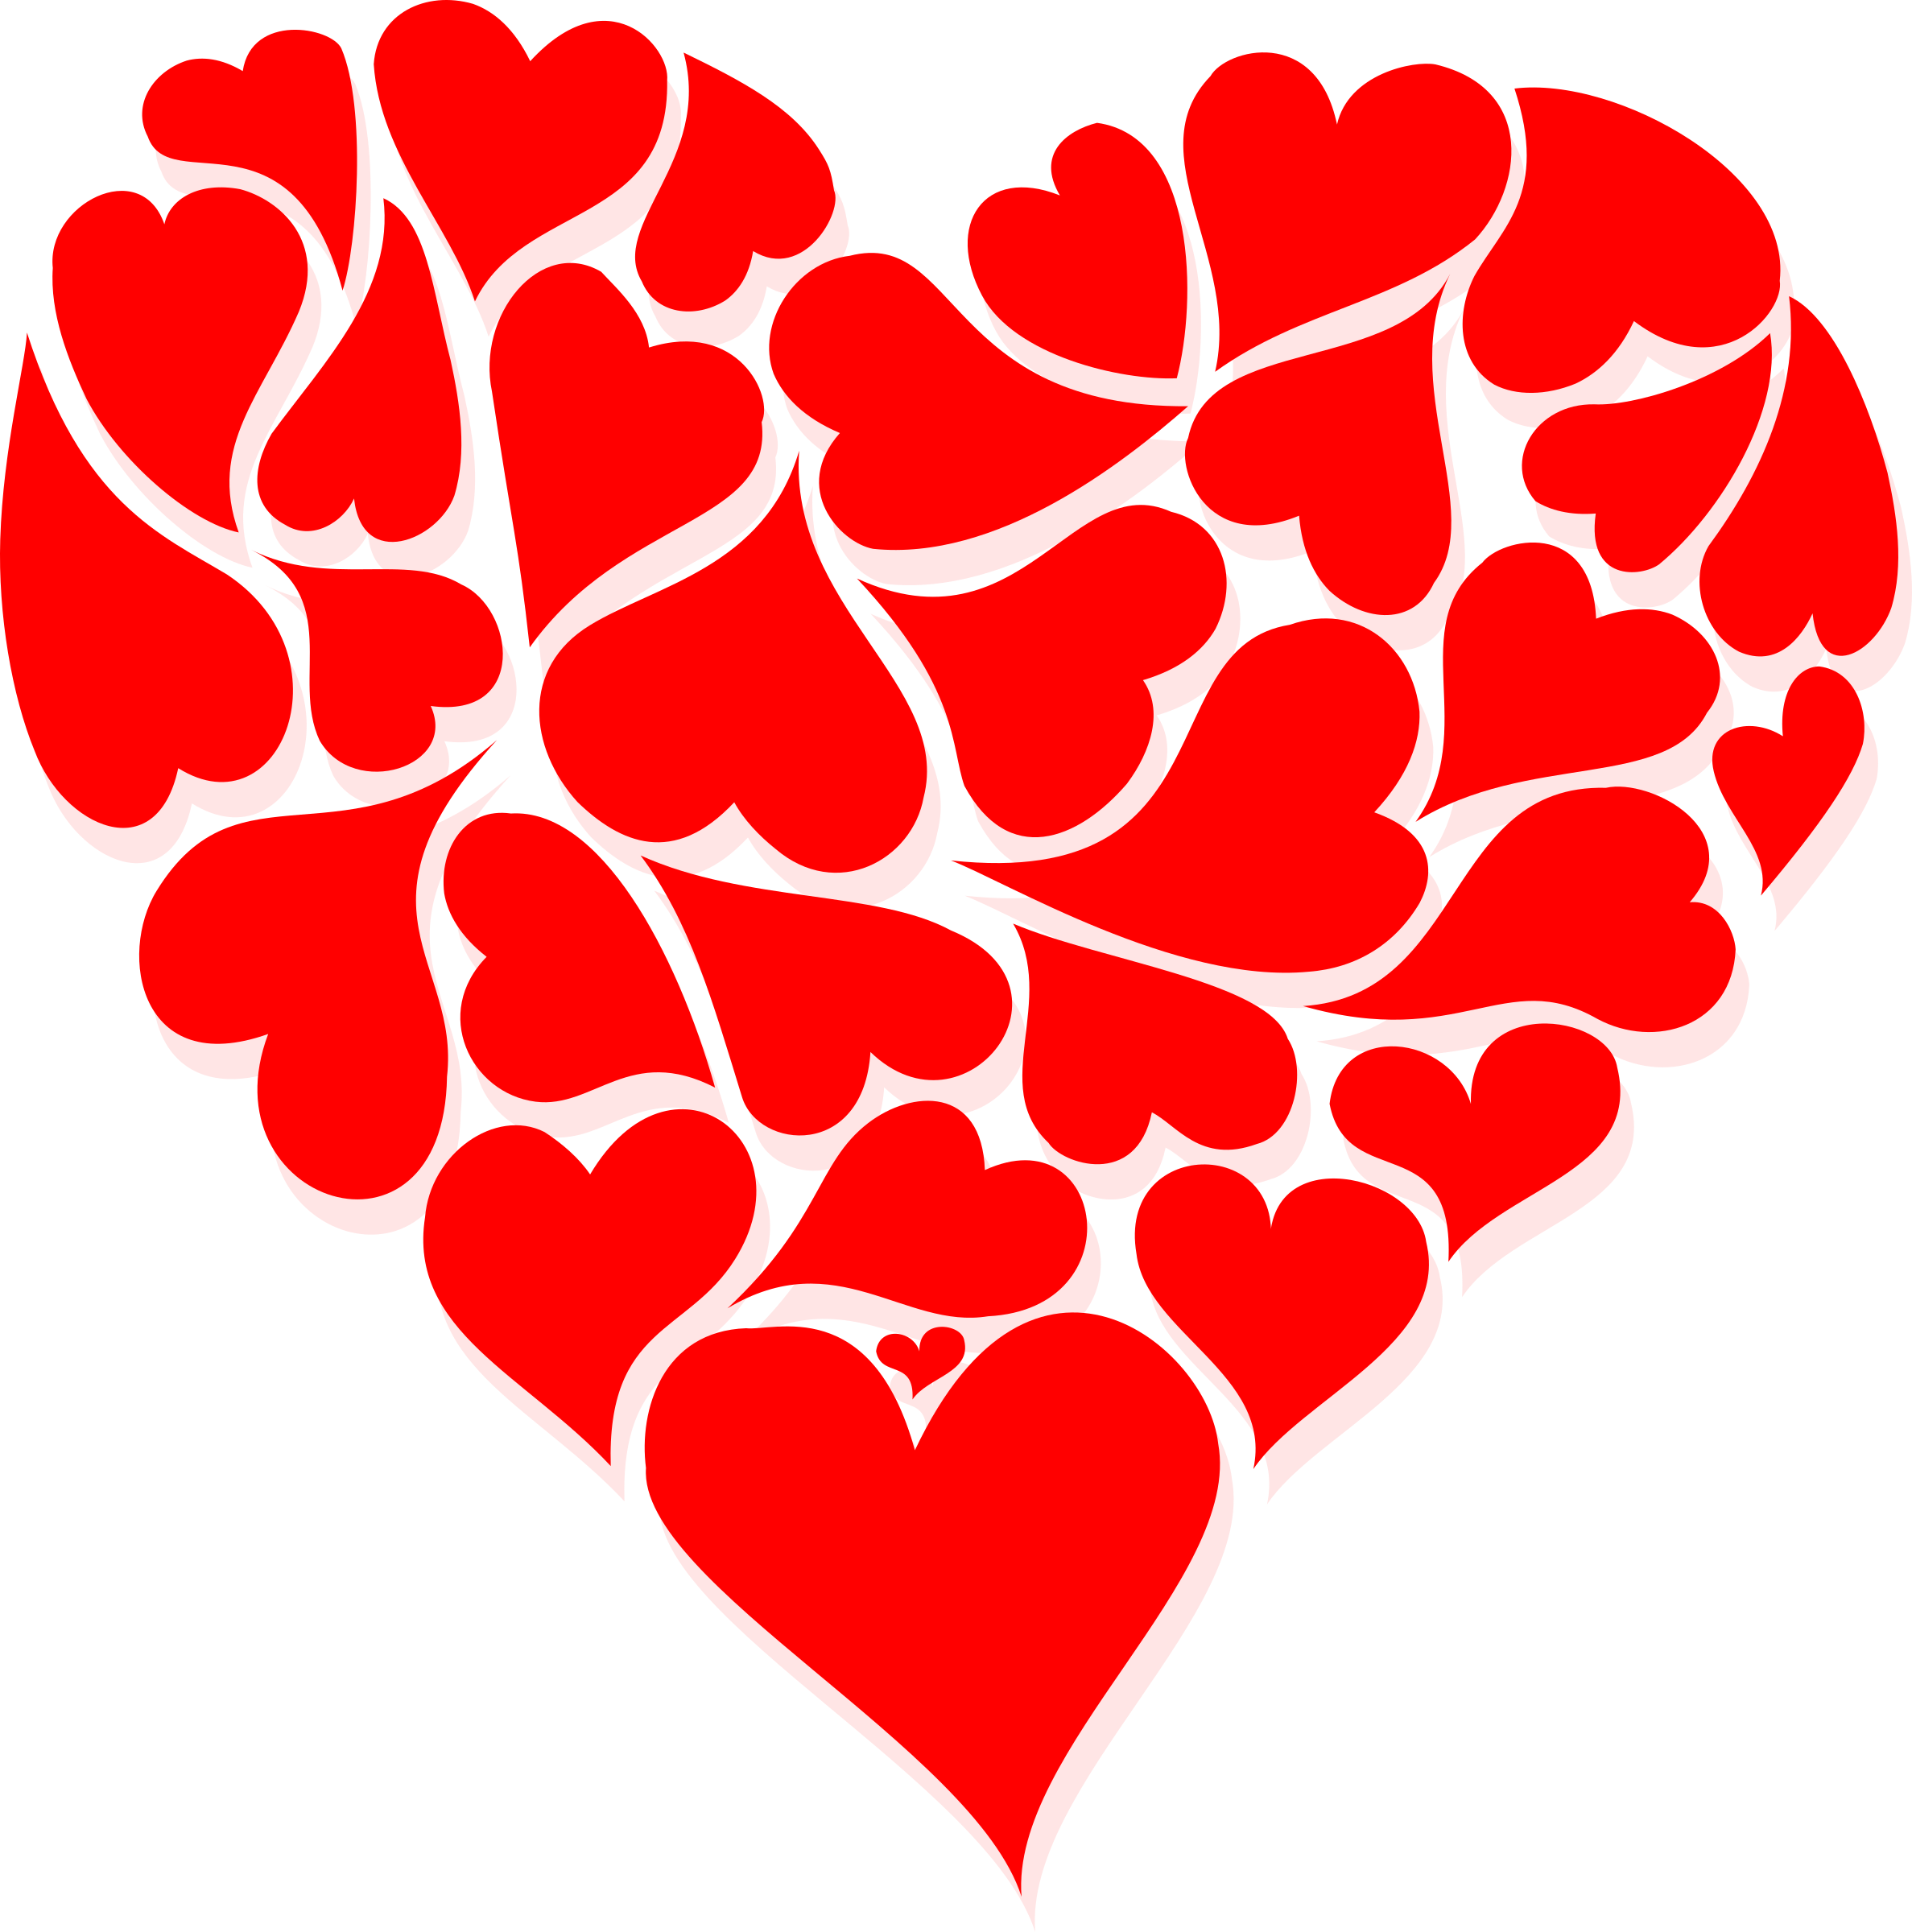 Valentines Day Clipart Transparent Hearts.